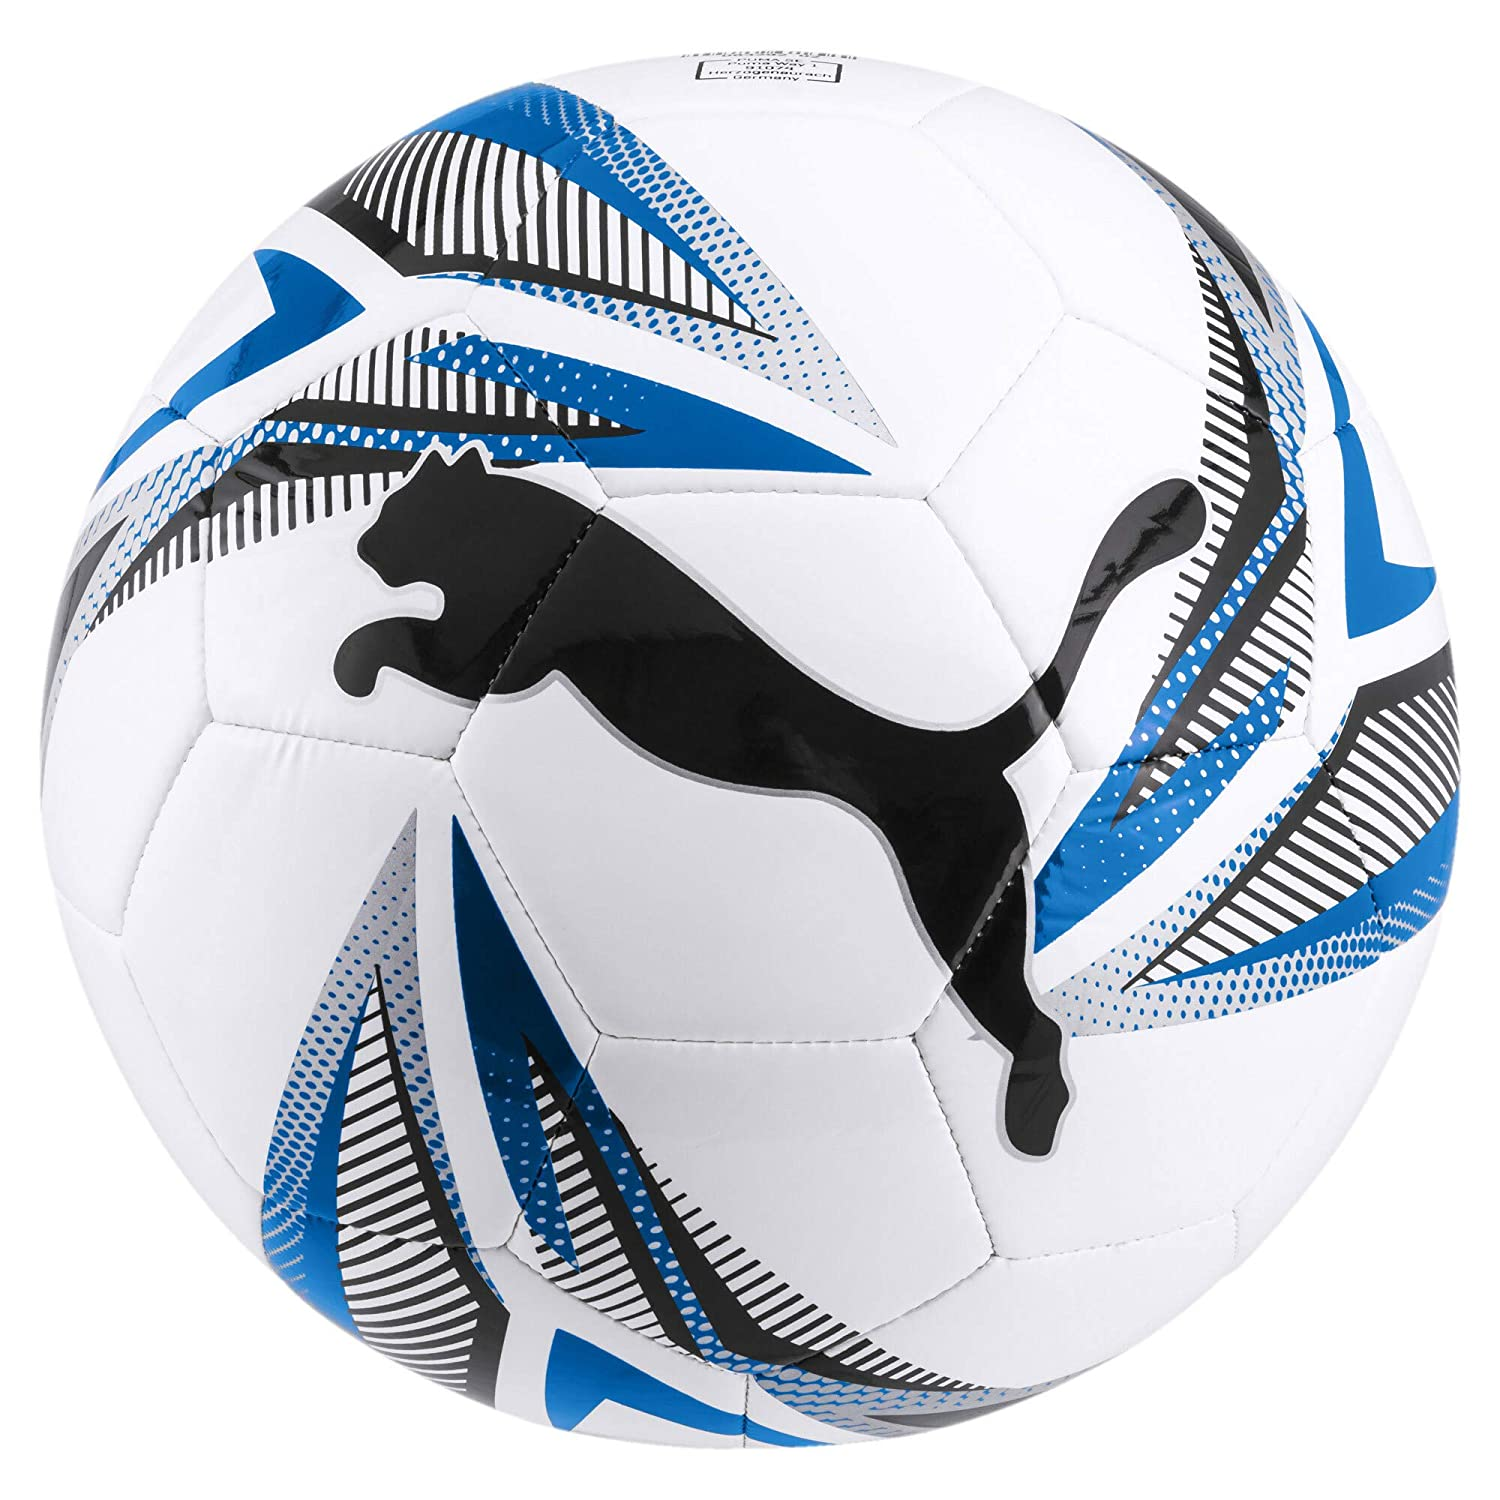 PUMA ftblplay Big Cat - Balón de fútbol, Color Blanco-Negro-Azul ...